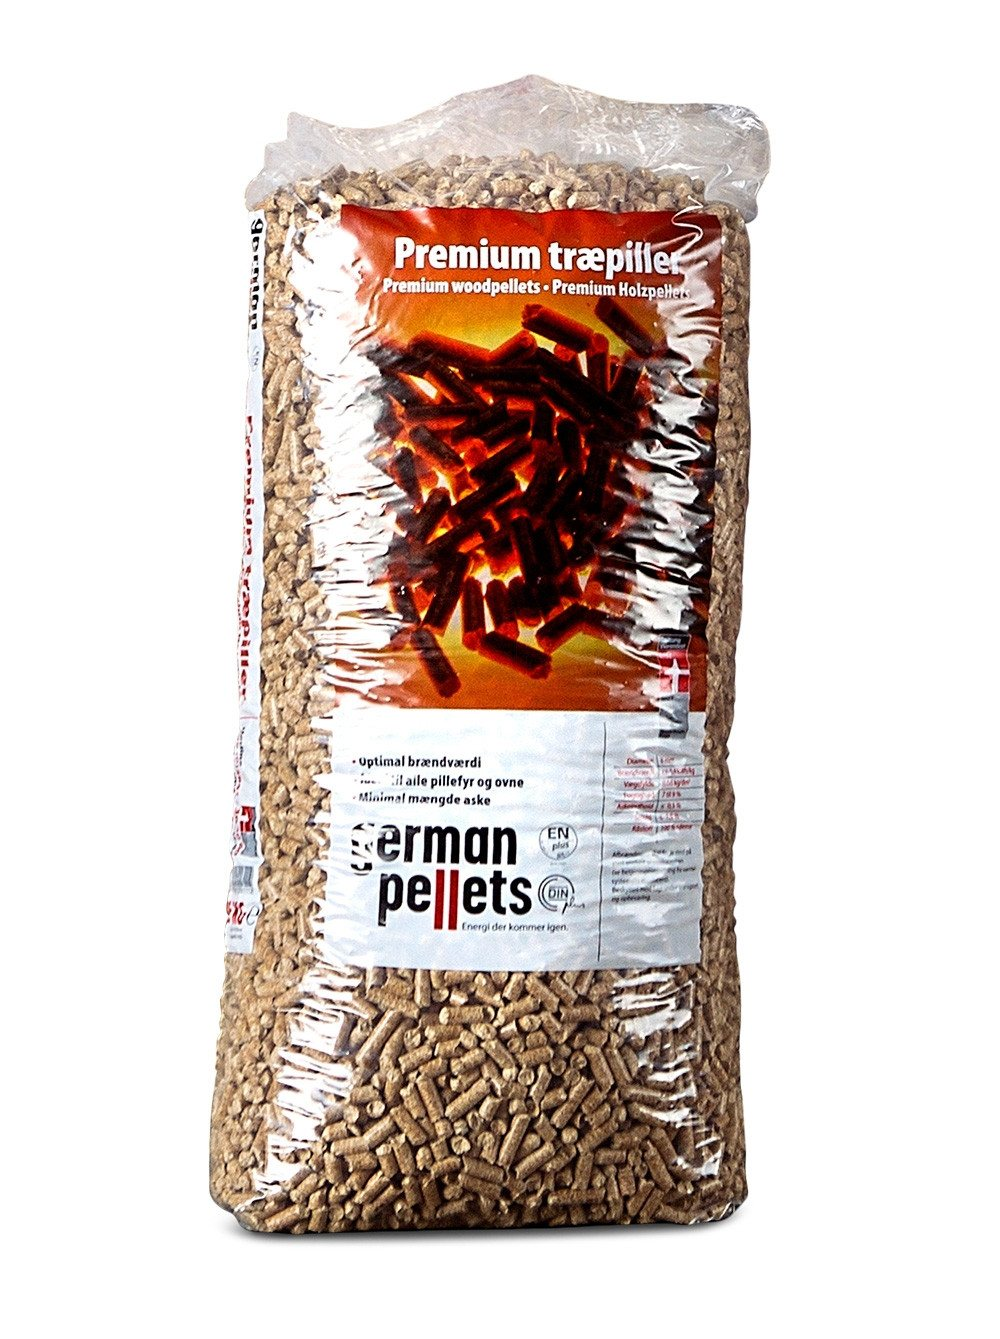 German Pellets - Premium træpiller i poser - 6 mm.